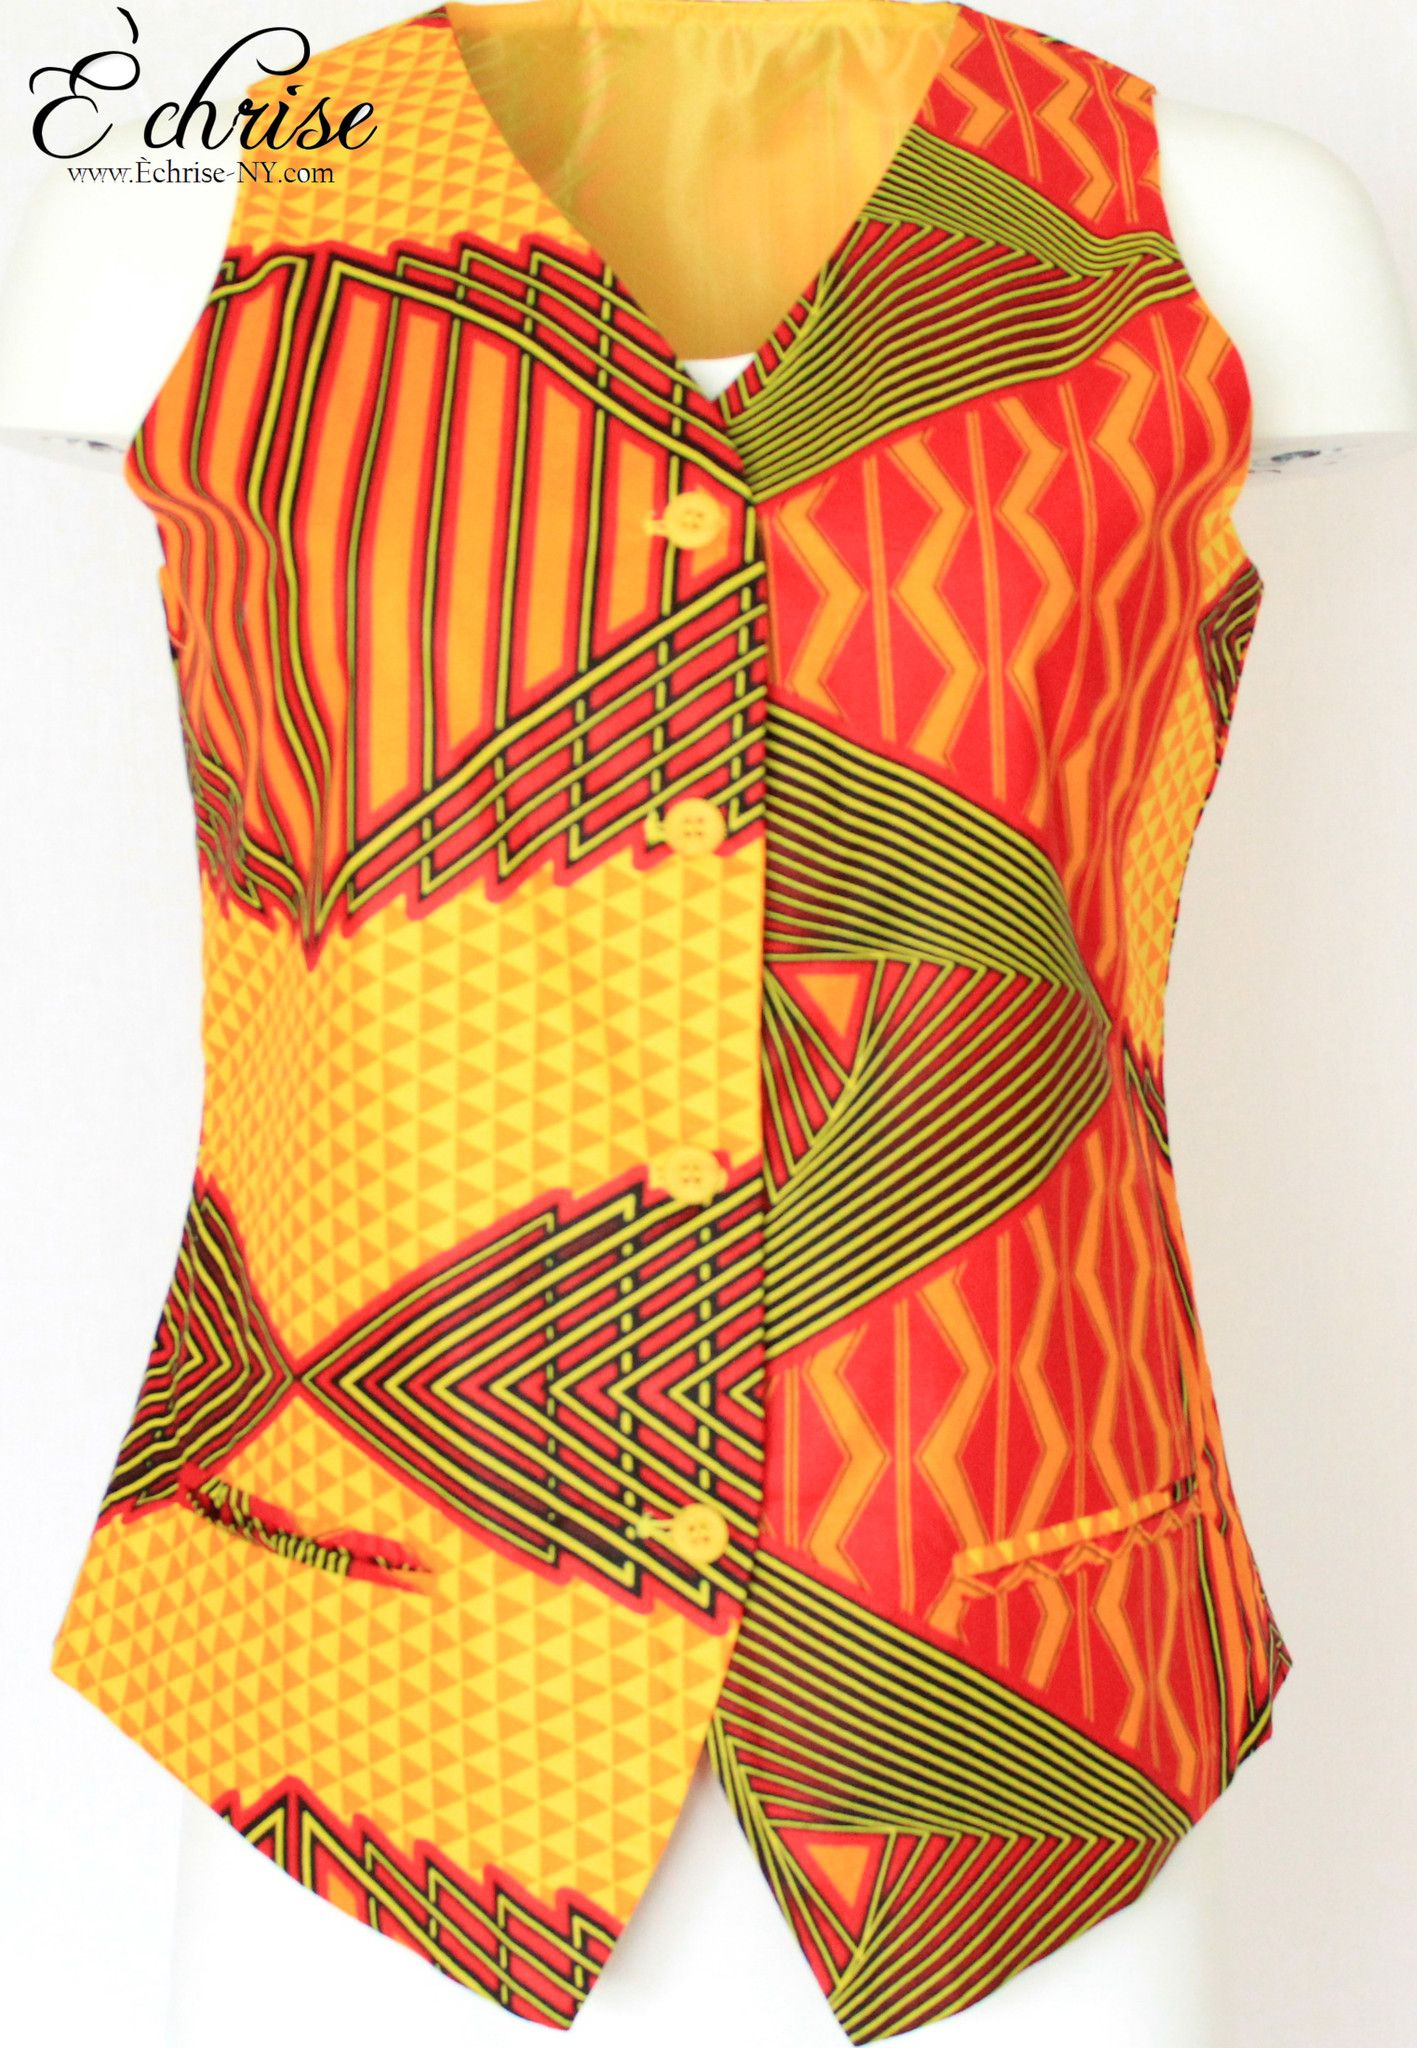 Q112V Geometric WaxPrint Vest/Waist Coat - V6614 Yellow